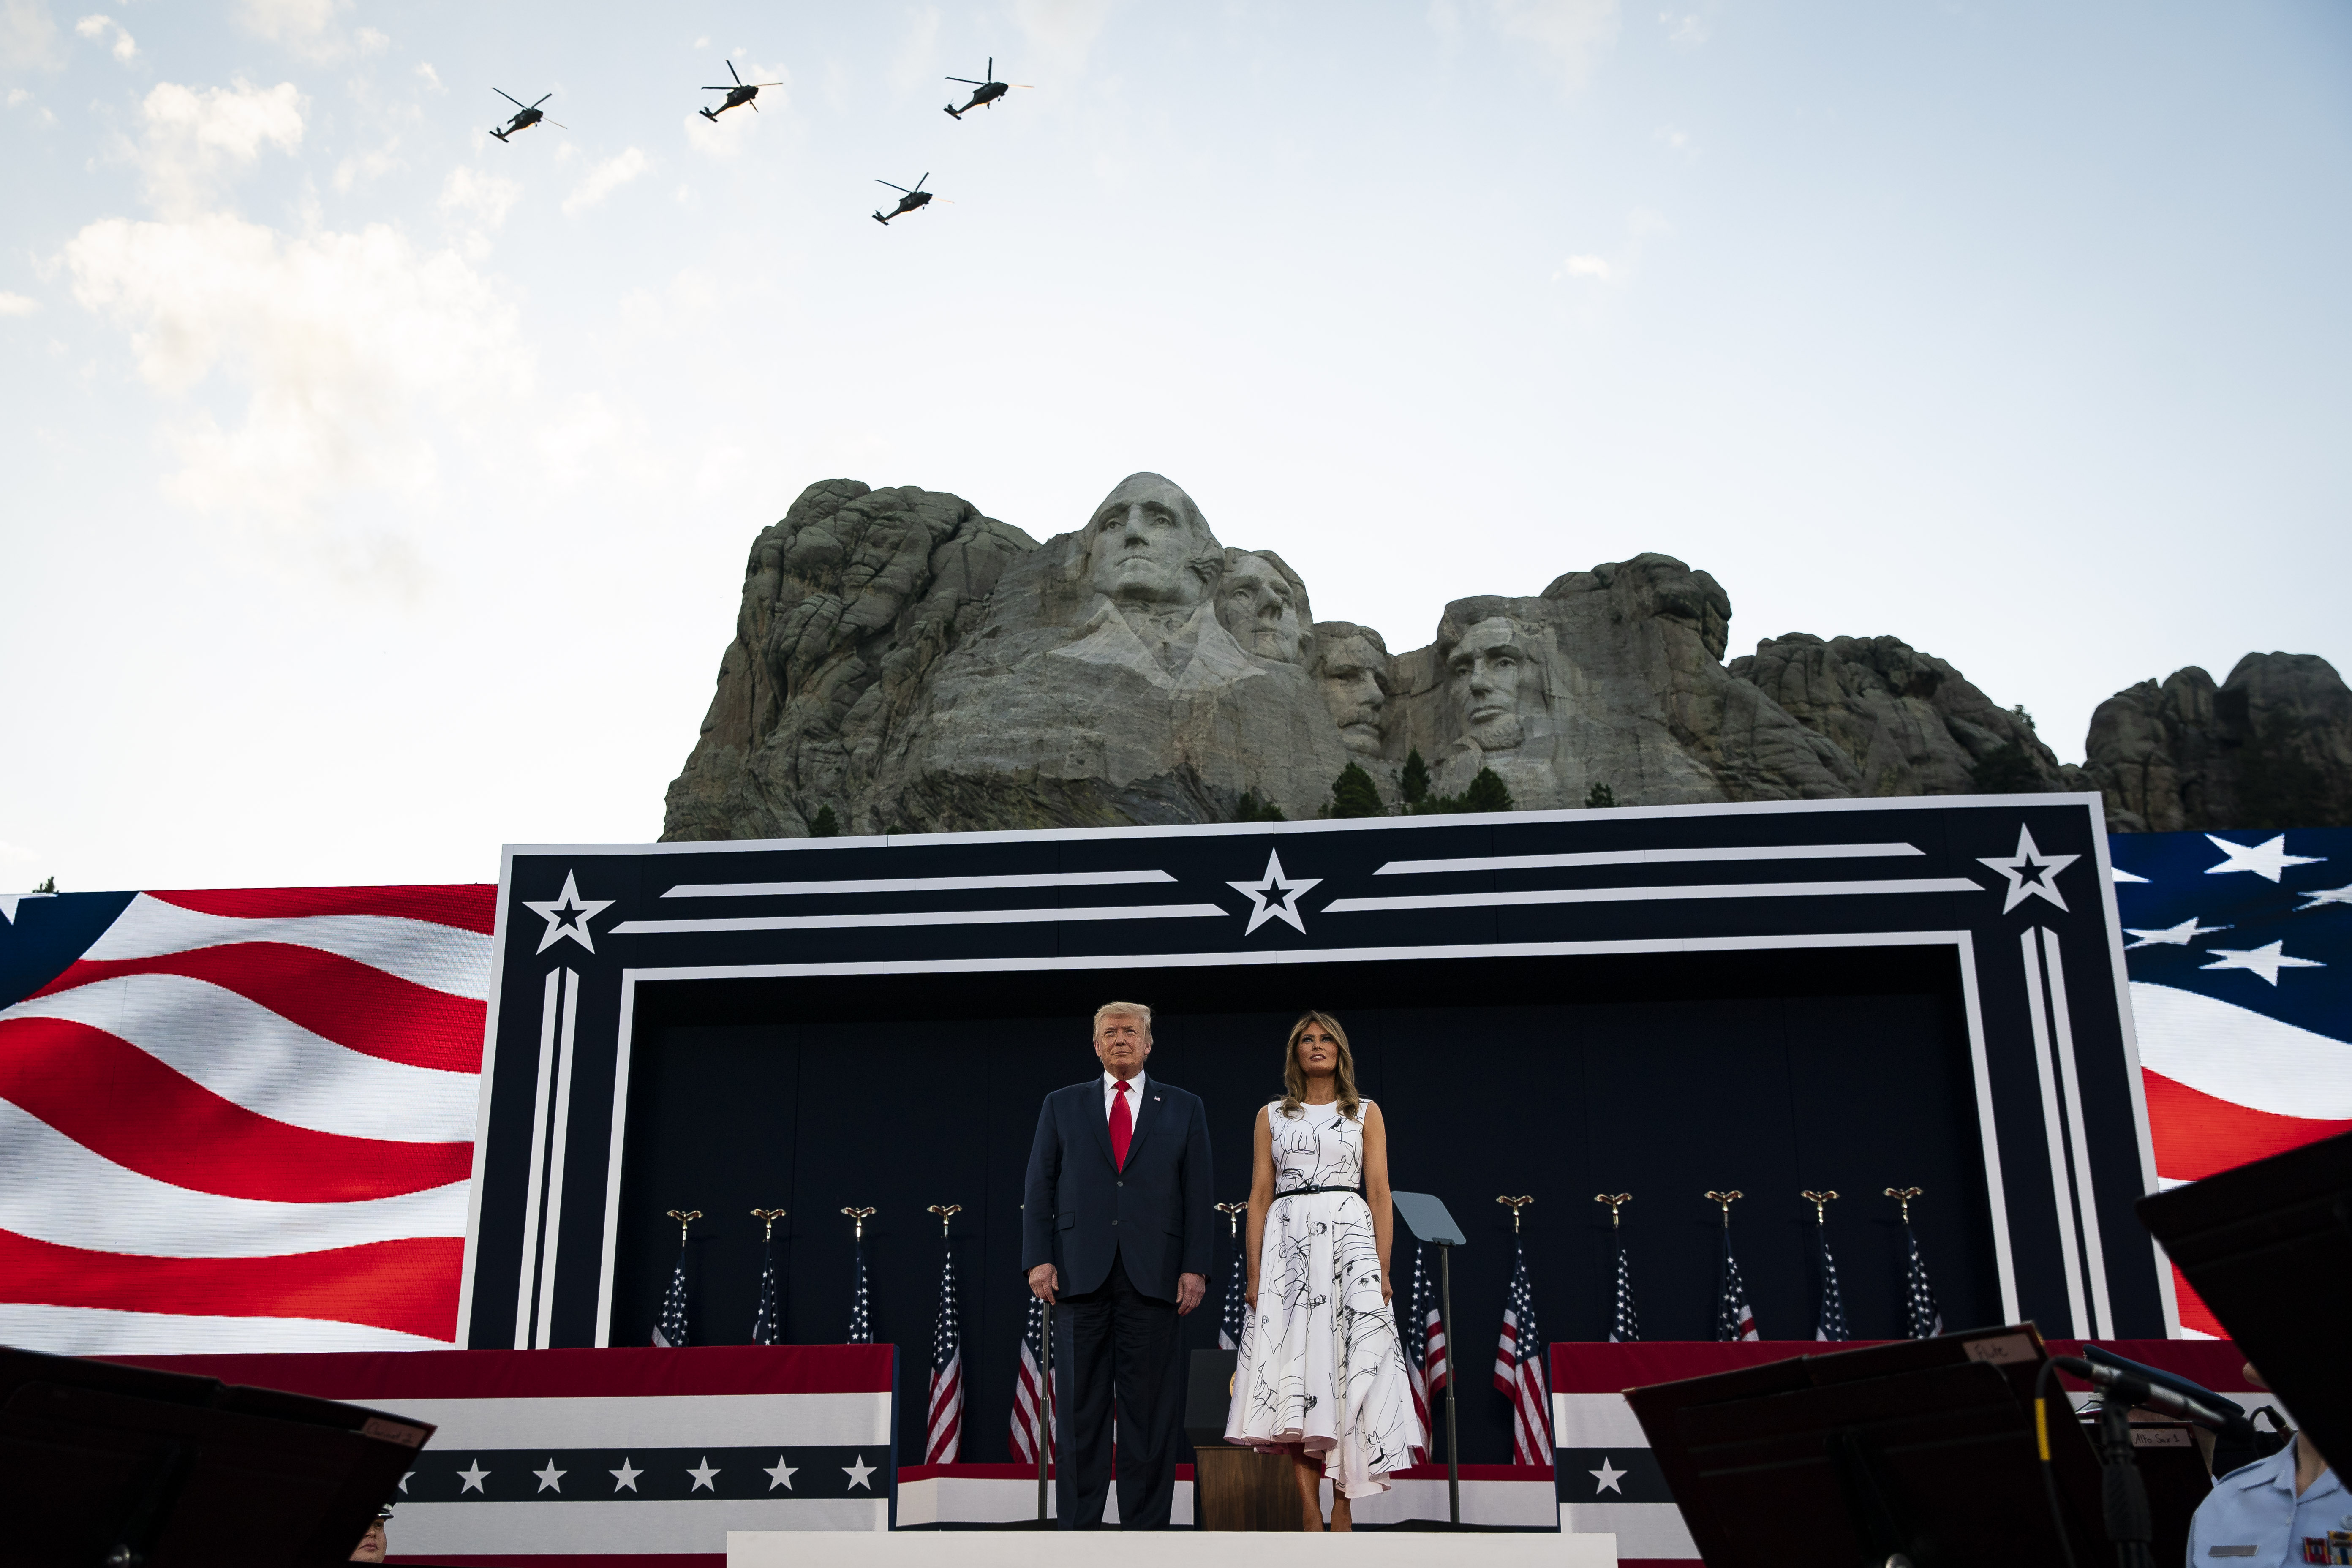 Trump Denies That White House Asked About Adding Him To Mount Rushmore The Washington Post